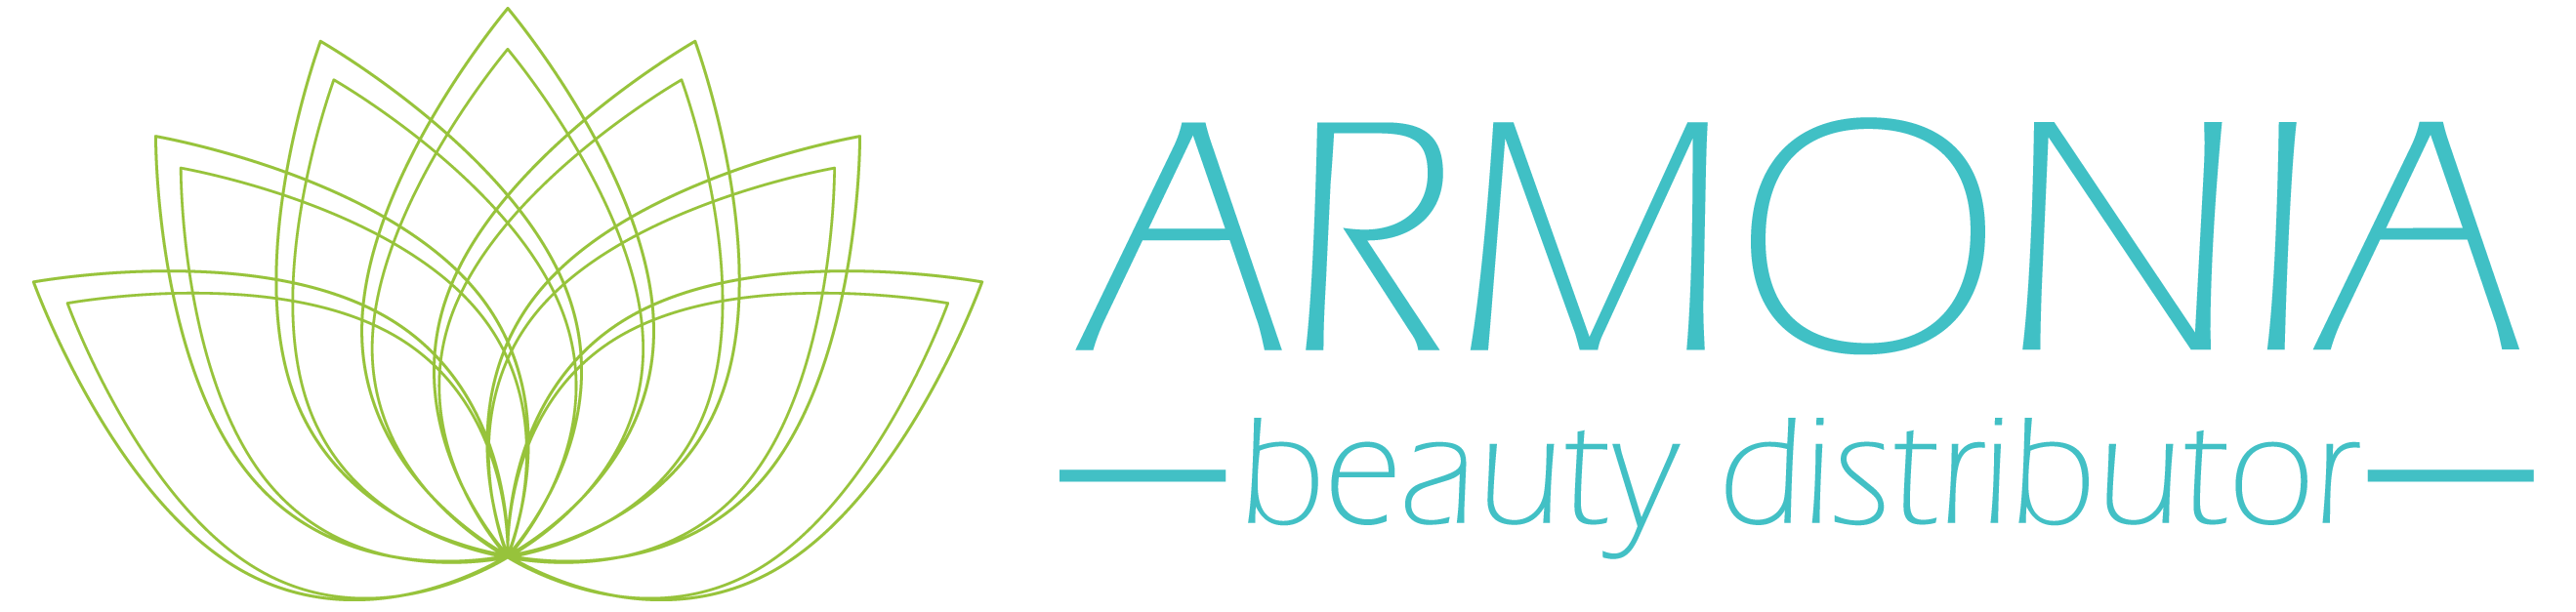 Armonia Beauty Distributor